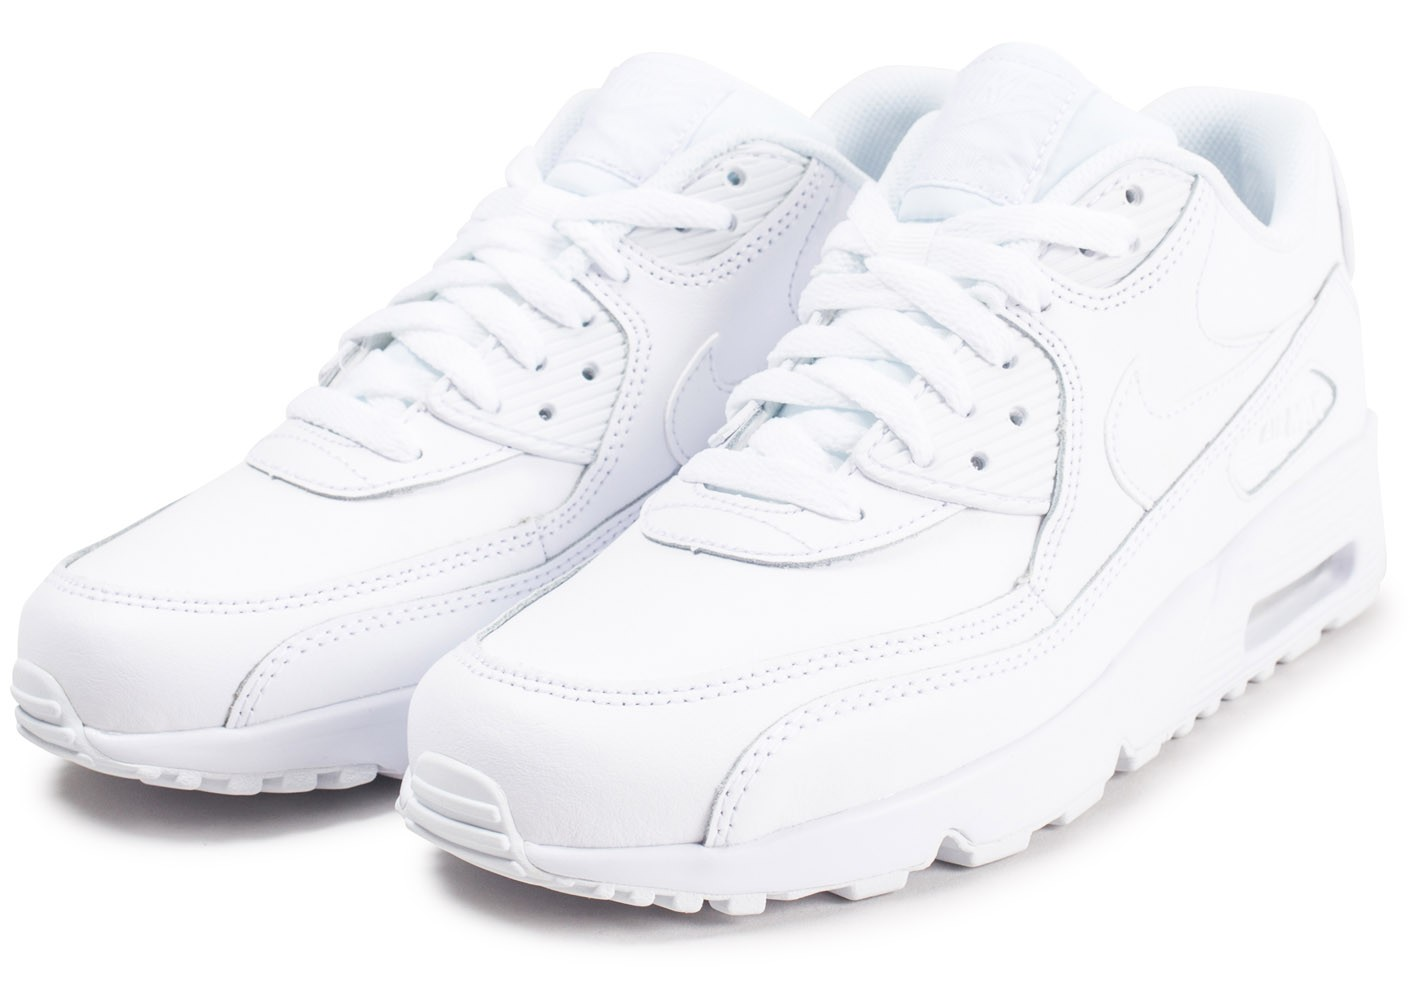 competitive price 1a1cd 189e8 ... Chaussures Nike Air Max 90 Leather blanc junior vue intérieure ...